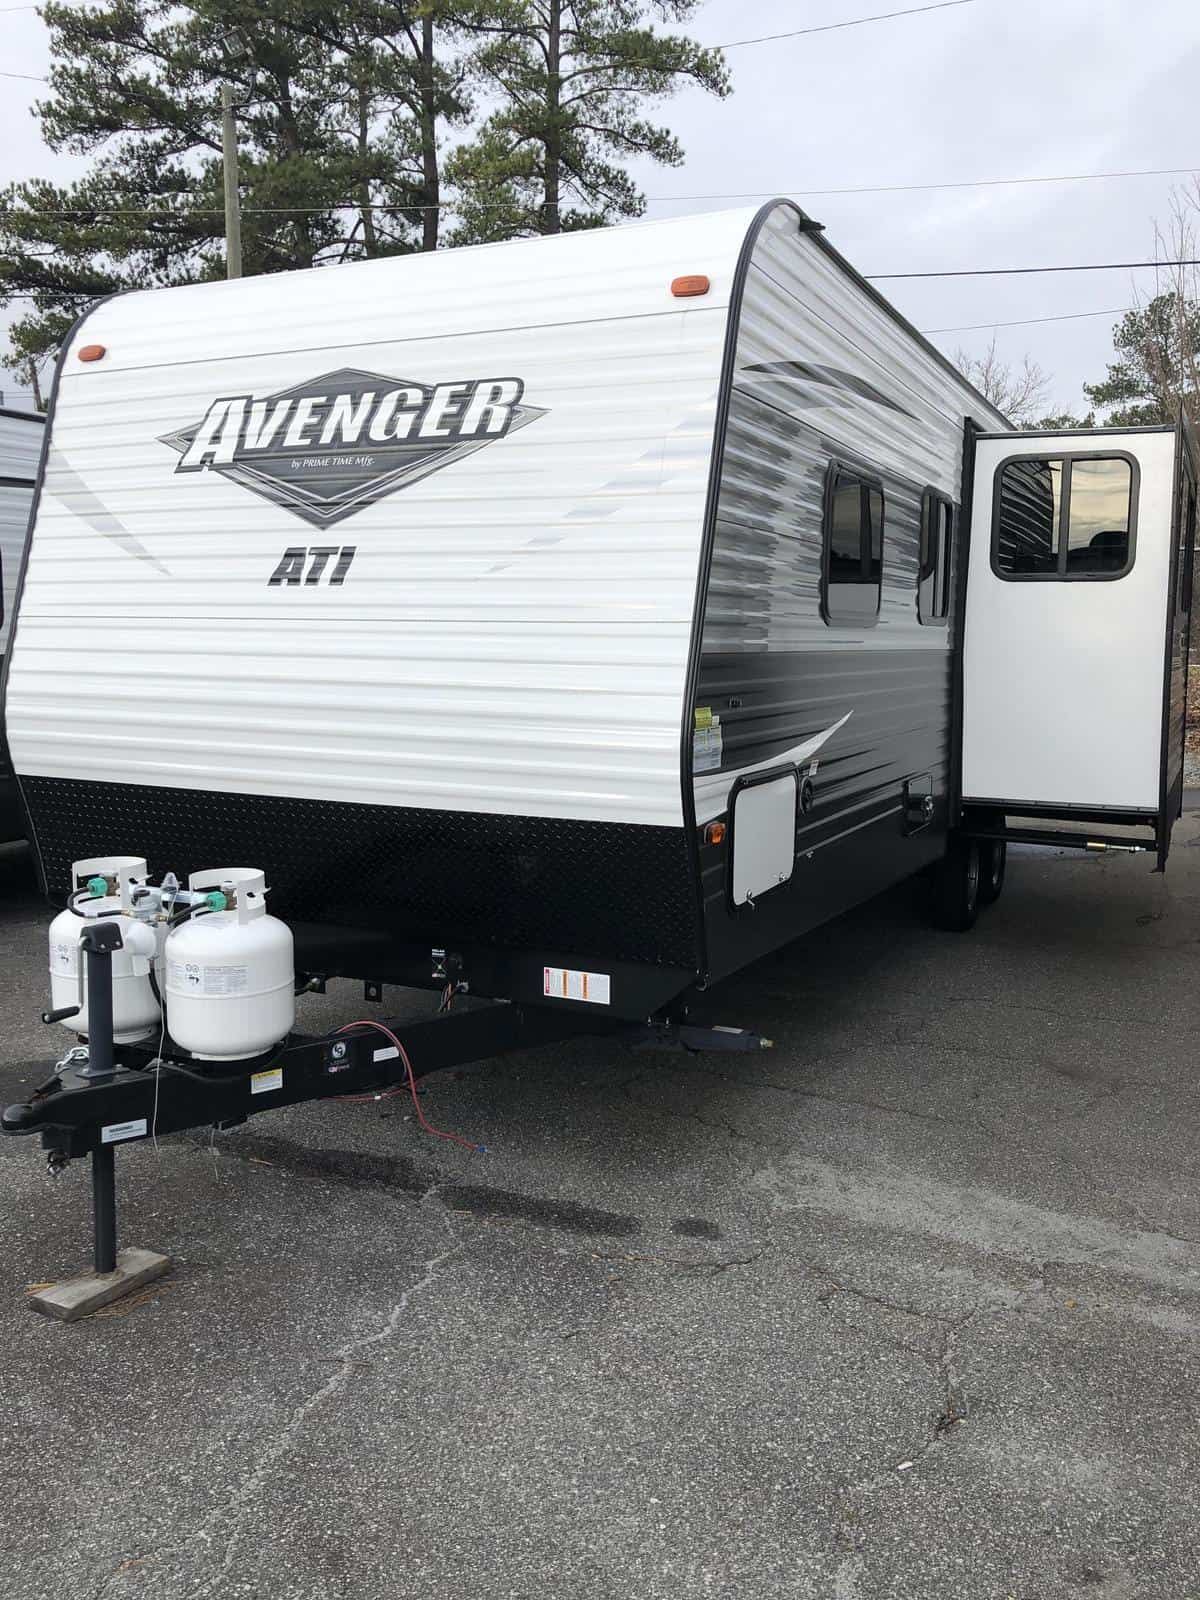 NEW 2019 Prime time Avenger 21RBS ATI - Three Way Campers